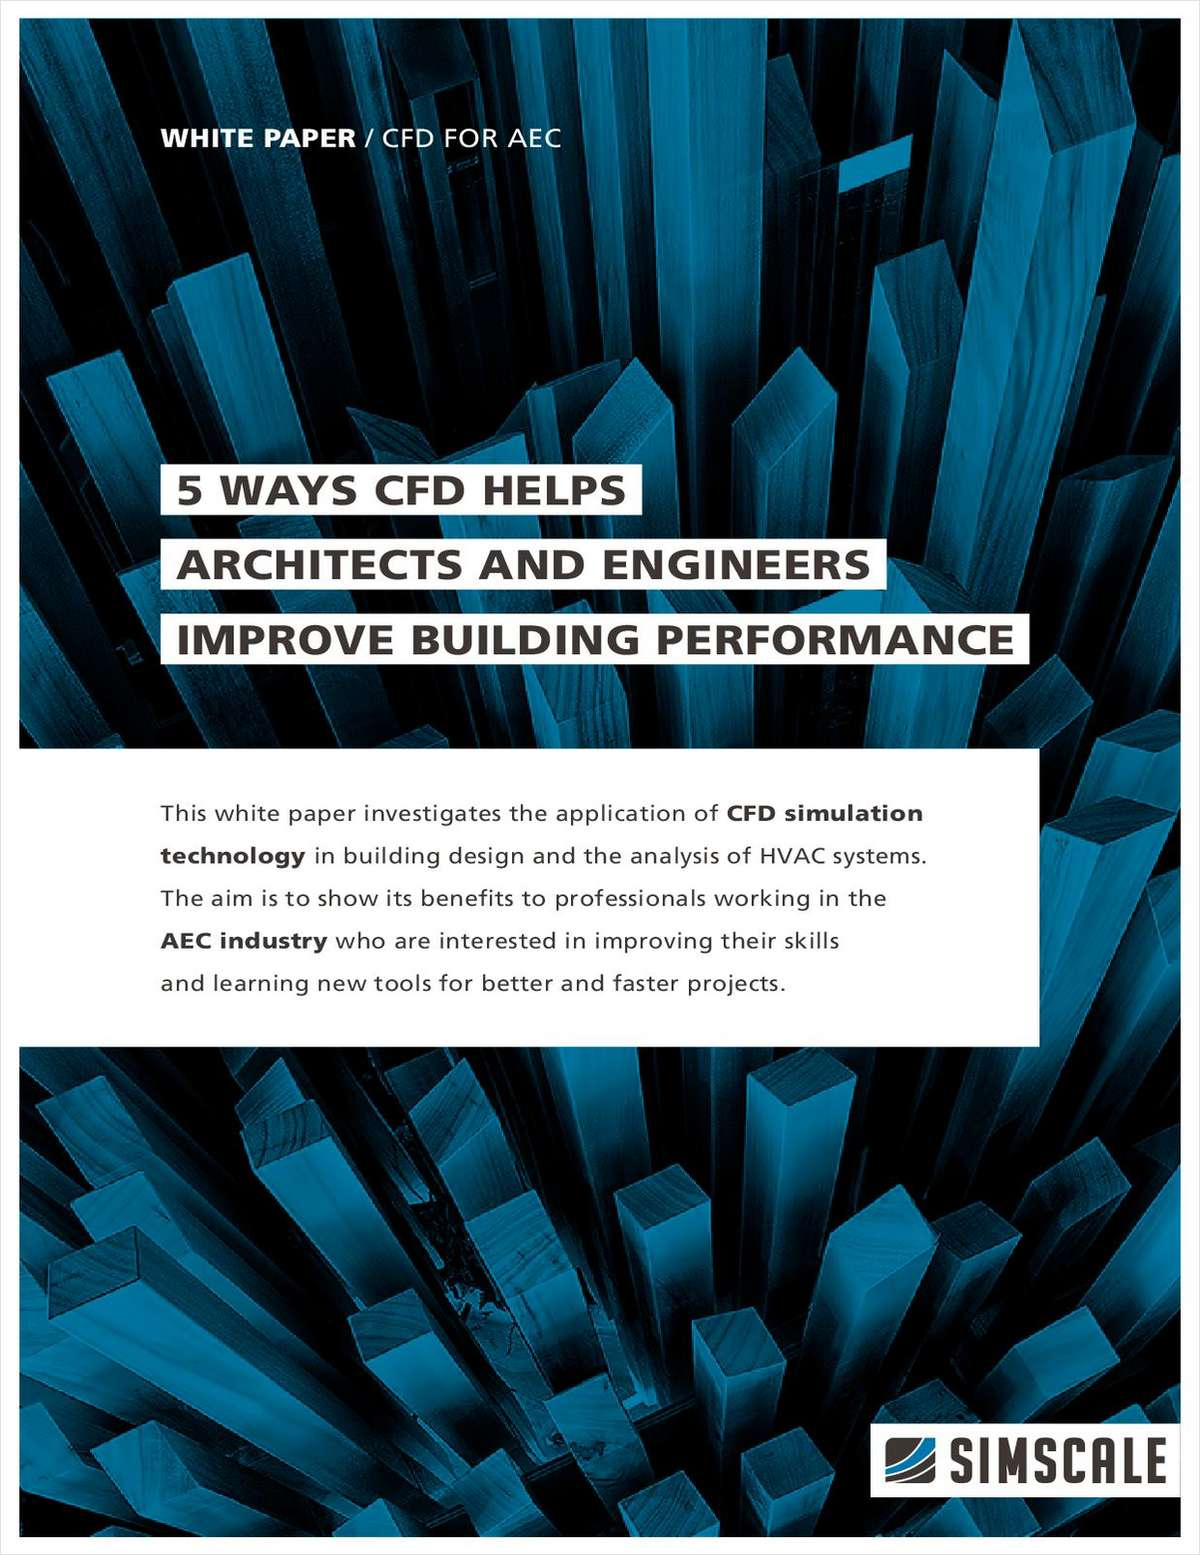 5 Ways CFD Helps Architects and Engineers Improve Building Performance